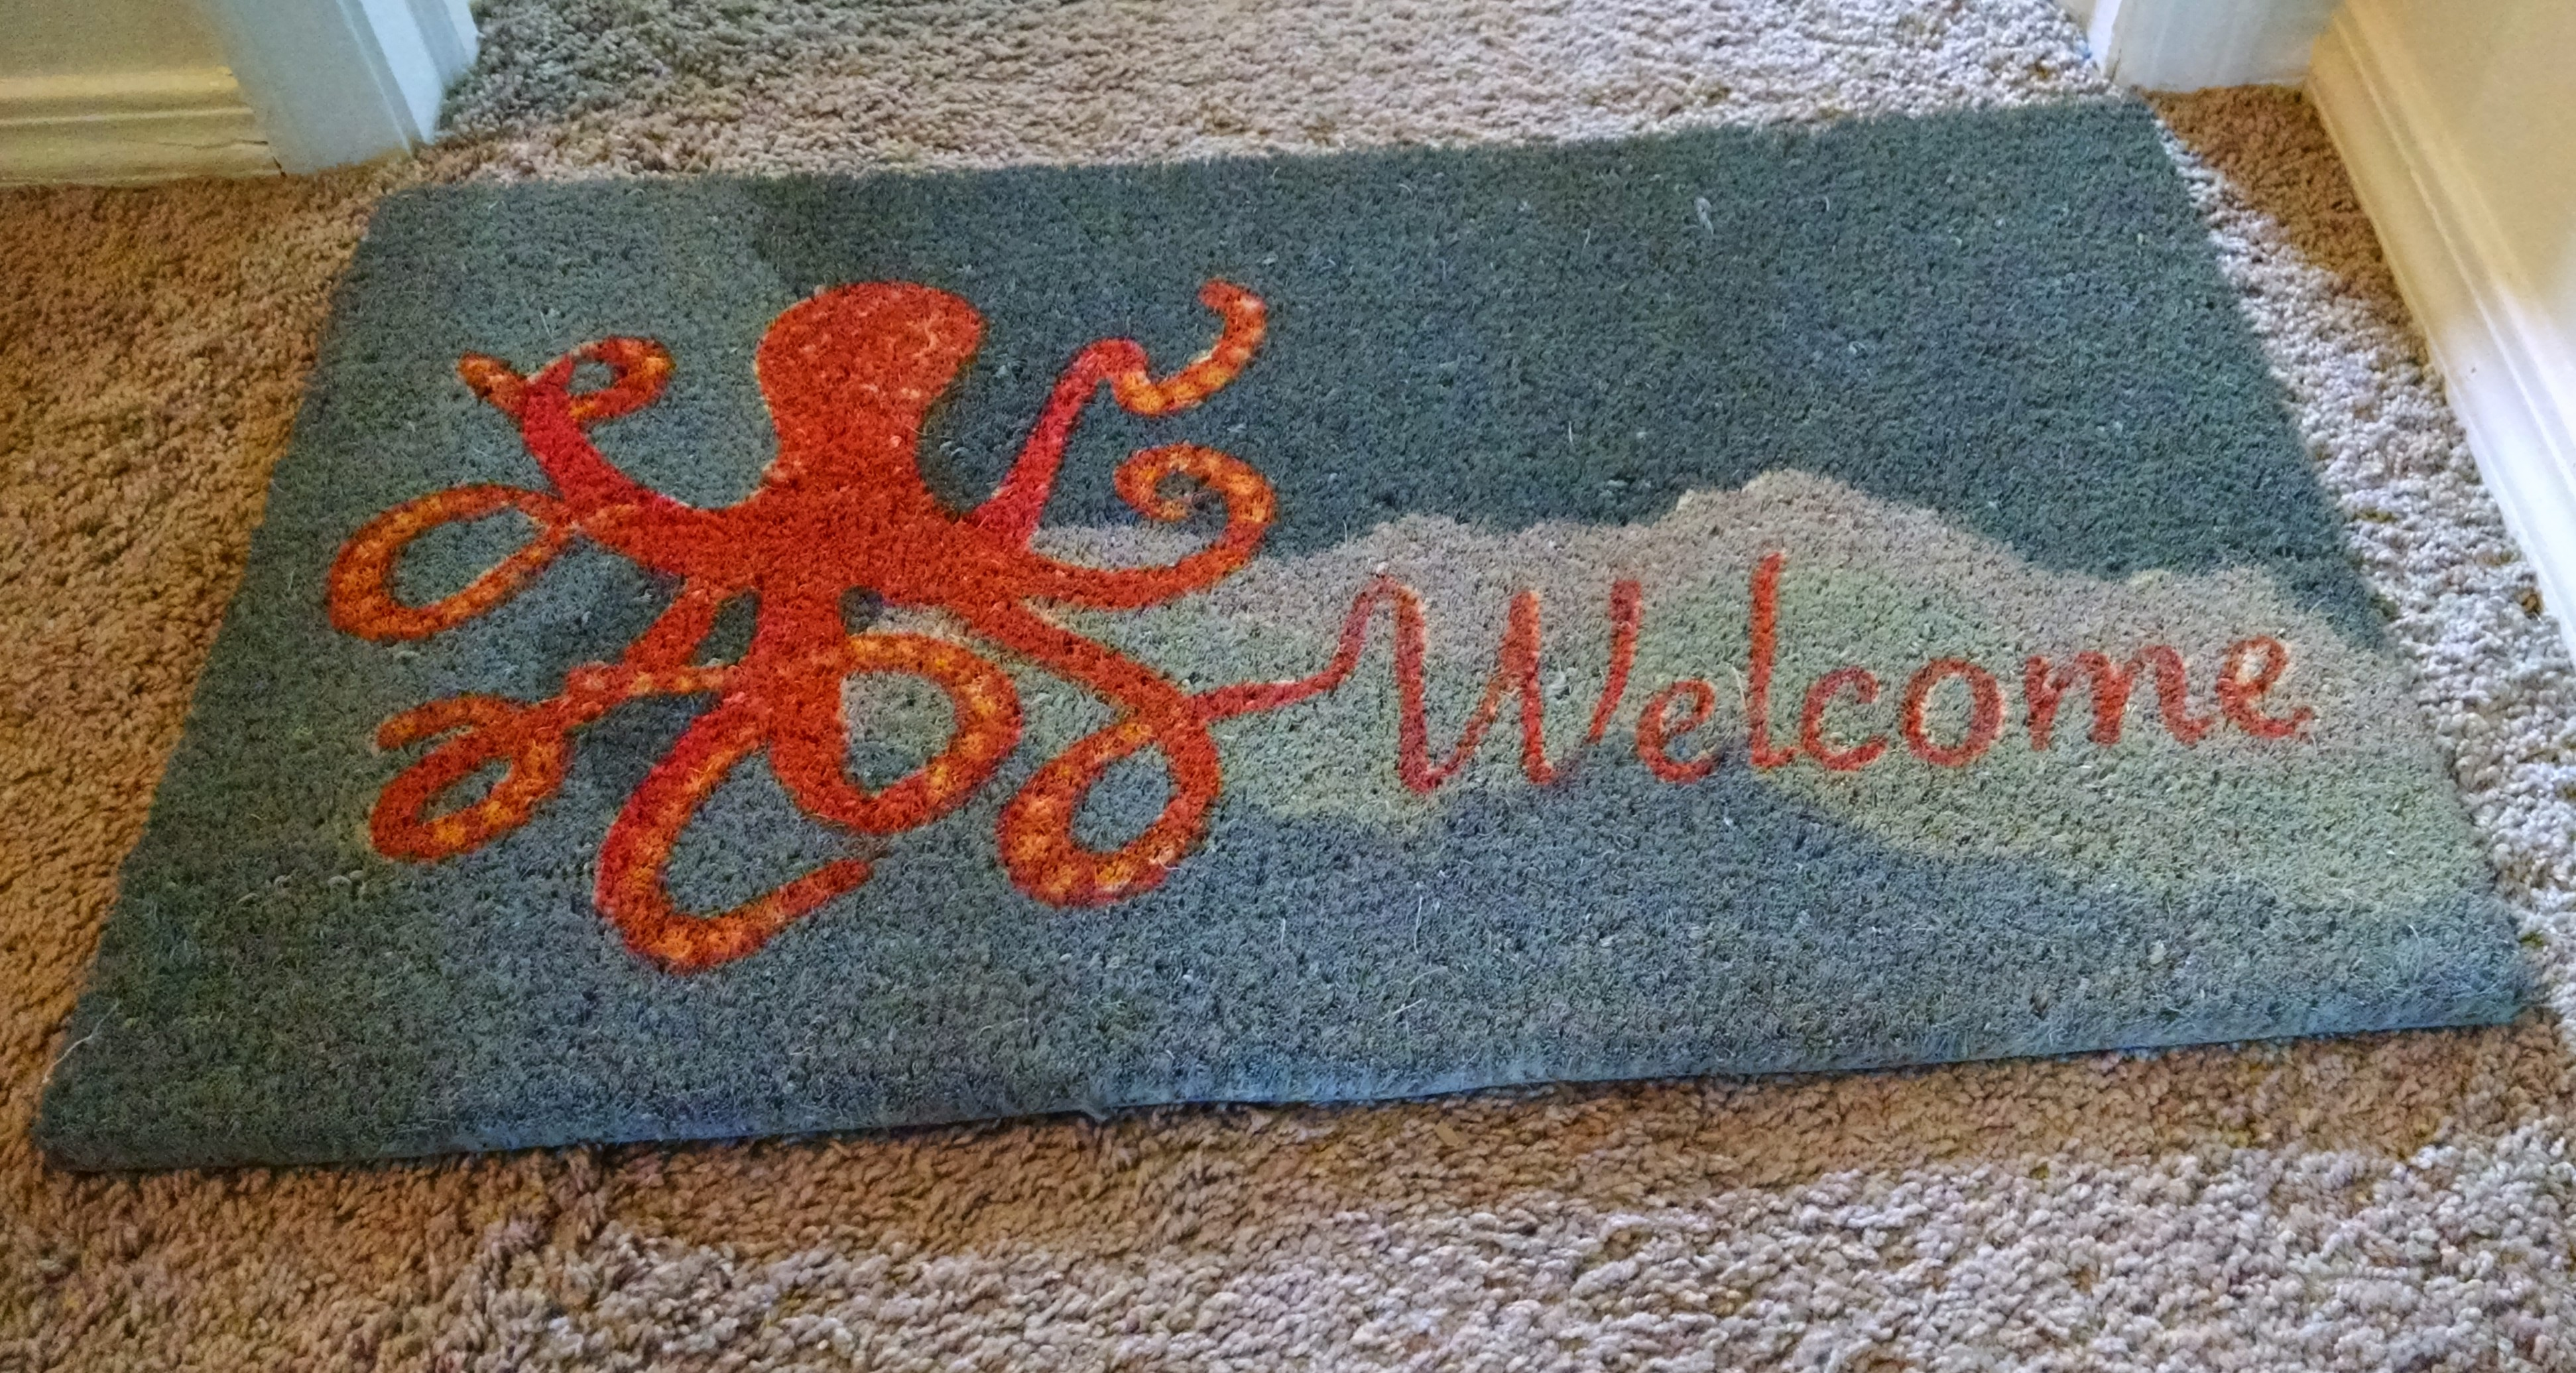 lummy ny welcome doormat daze robust relaxing enormous ing door wipe home cheerful custom funny ideas paws decorating zq mats holiday your doormats